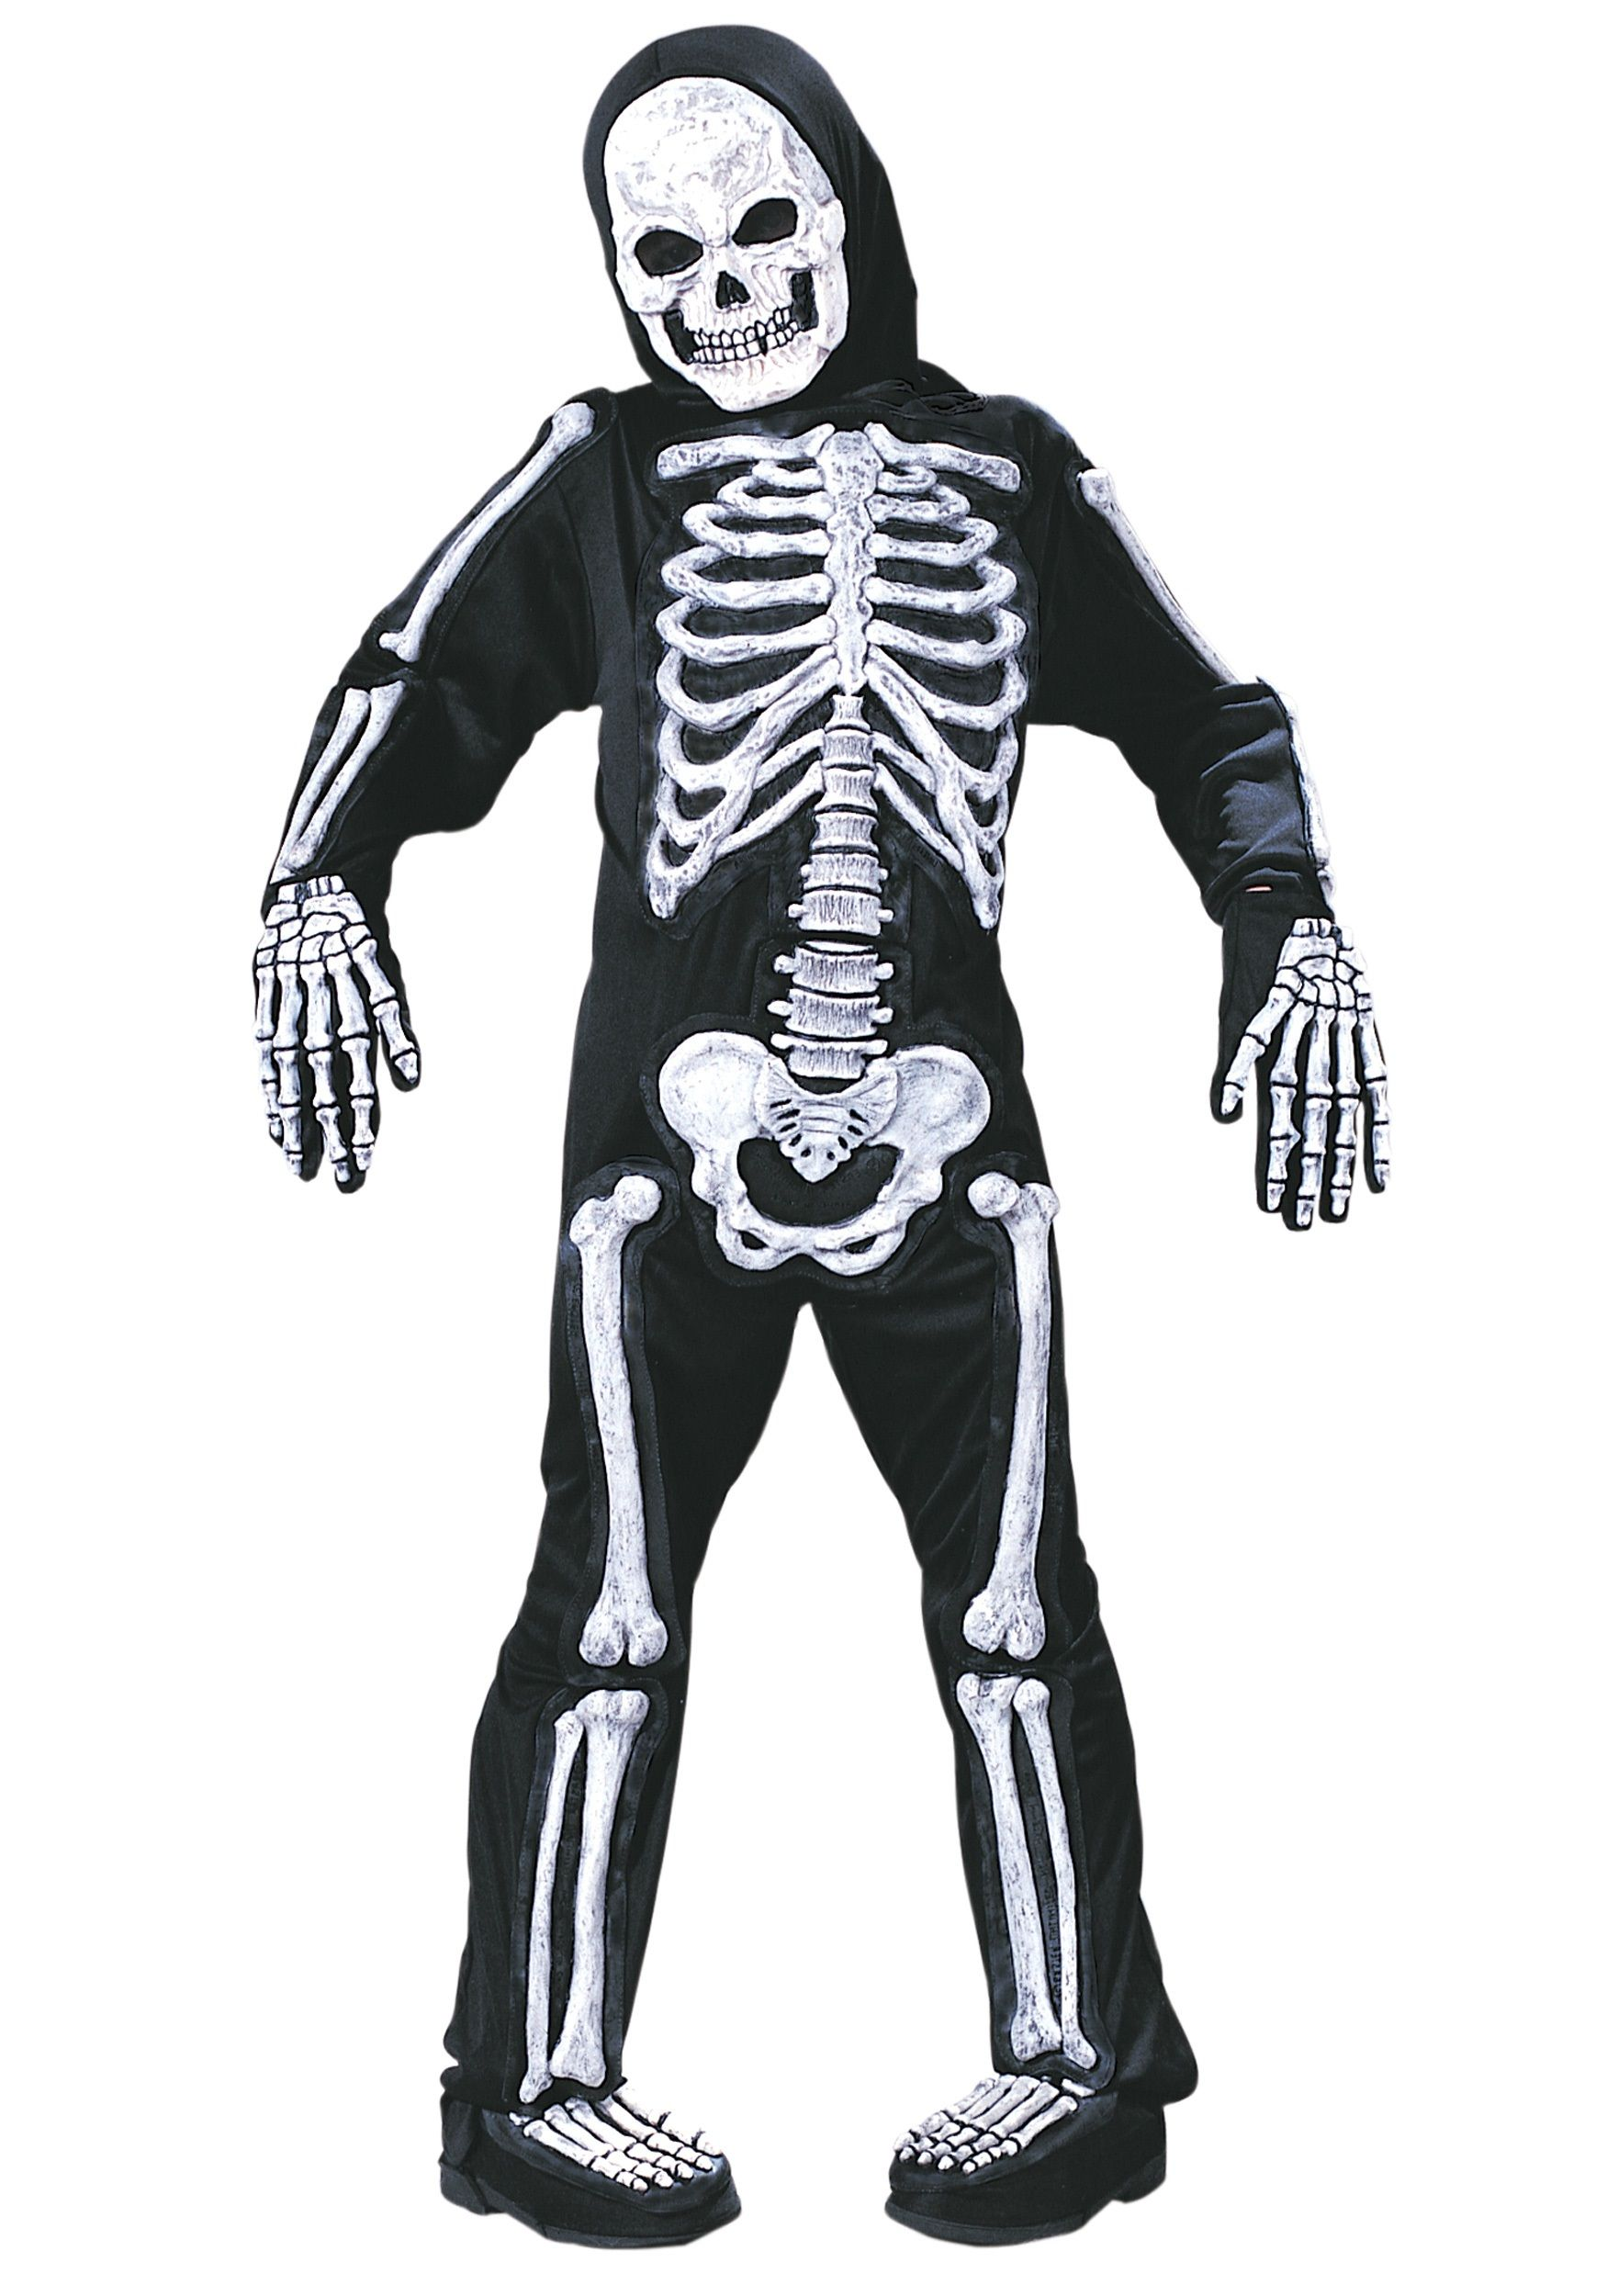 Kids Skeleton Costume | Costumes, Halloween costumes and Boy ...